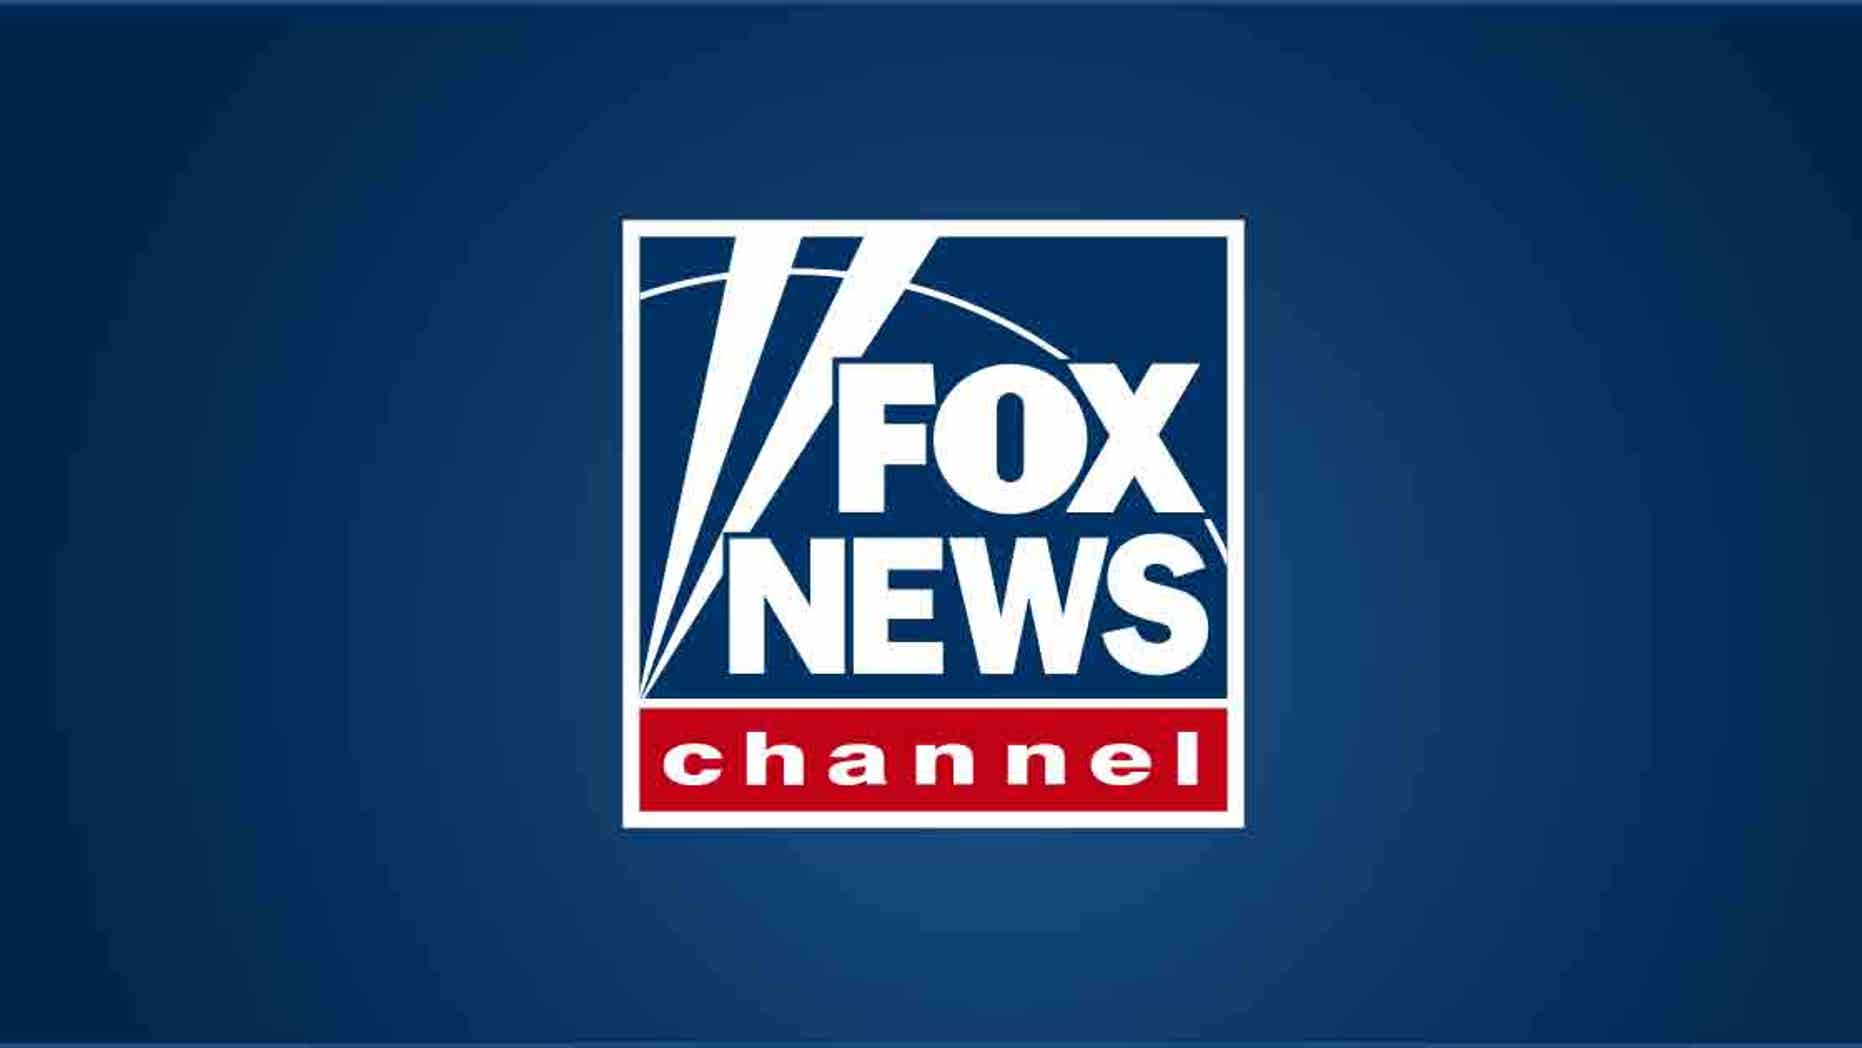 Westlake Legal Group fox-news-channel-logo Today on Fox News: March 3, 2020 fox-news/media fox-news/entertainment/media fox news fnc/media fnc article 38028d12-30c9-54a5-8e75-161b5eaa75b6